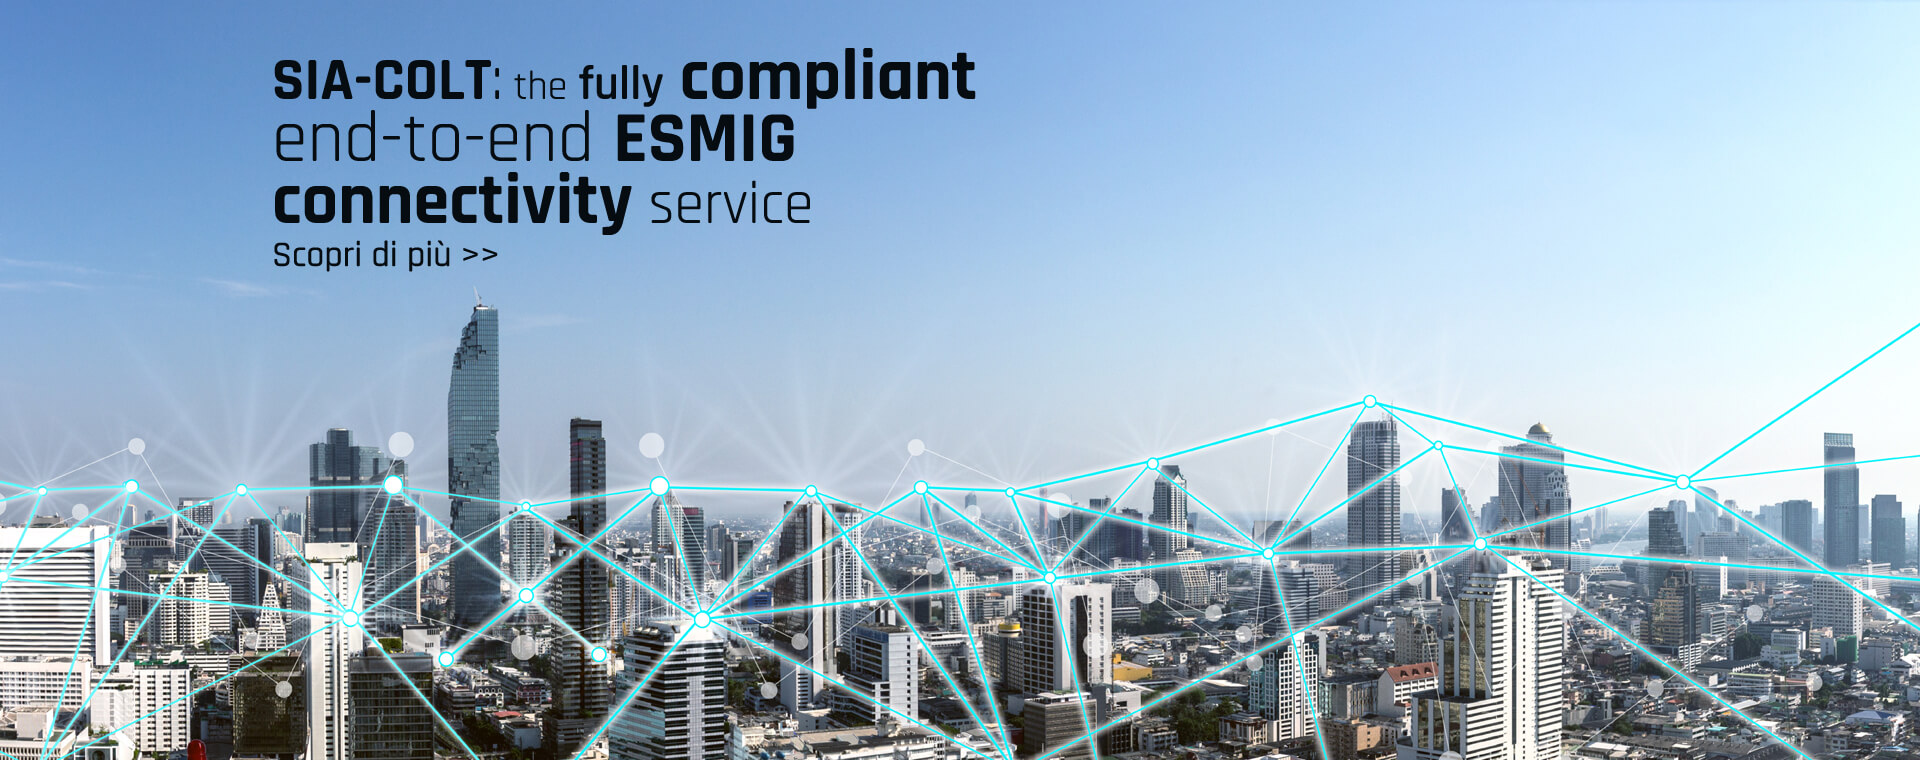 SIA-COLT: the fully compliant end-to-end ESMIG connectivity service